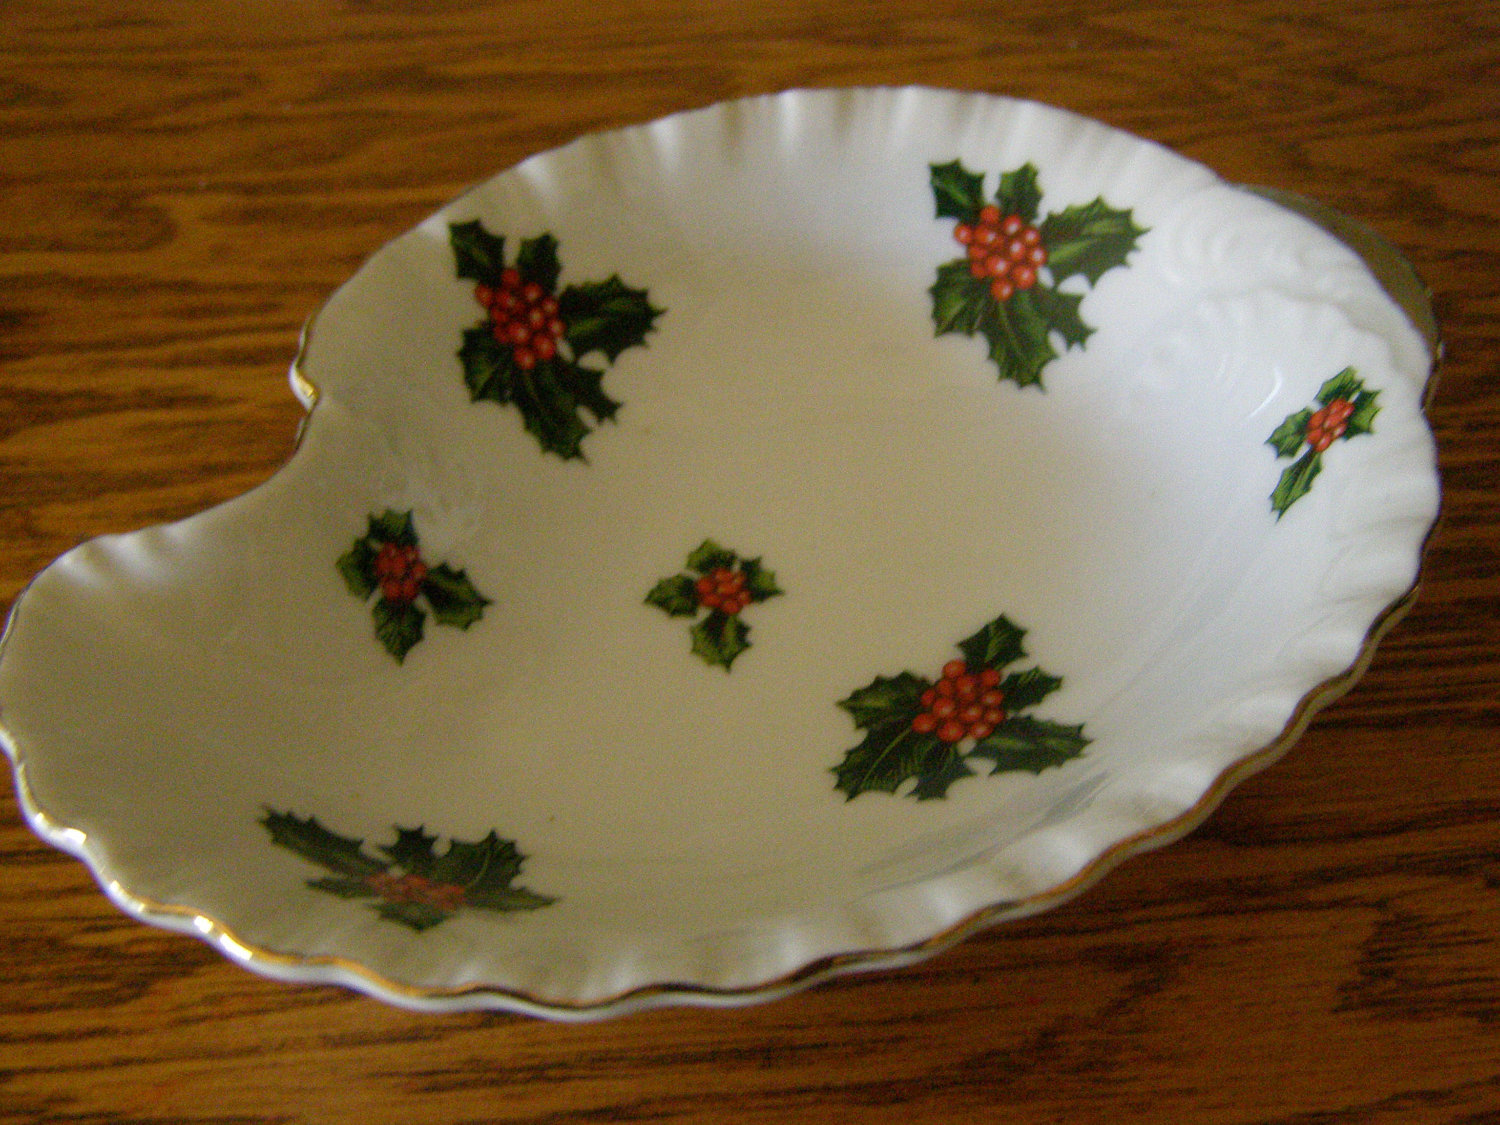 Vintage Lefton China stickered Christmas Dish with Holly Hand Painted Number 794 - $14.30